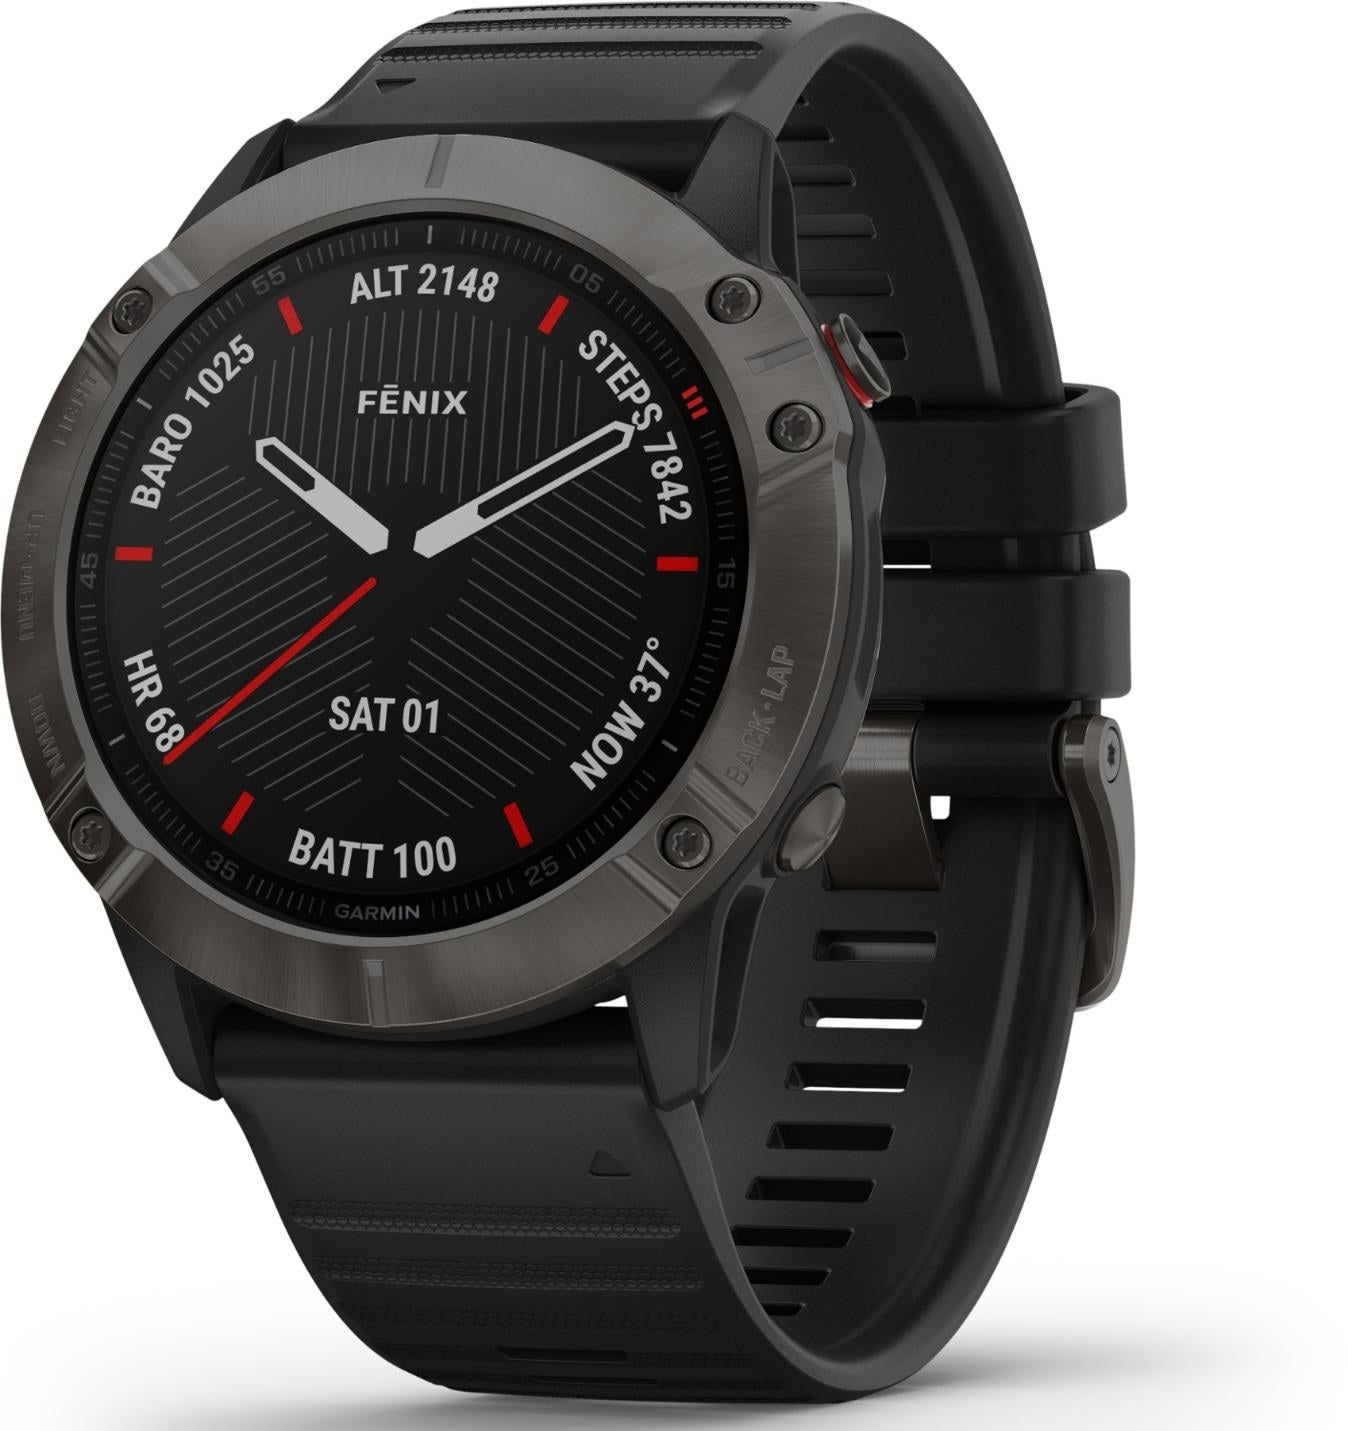 The watch with a black watch face, gunmetal dial, and silicone rubber band